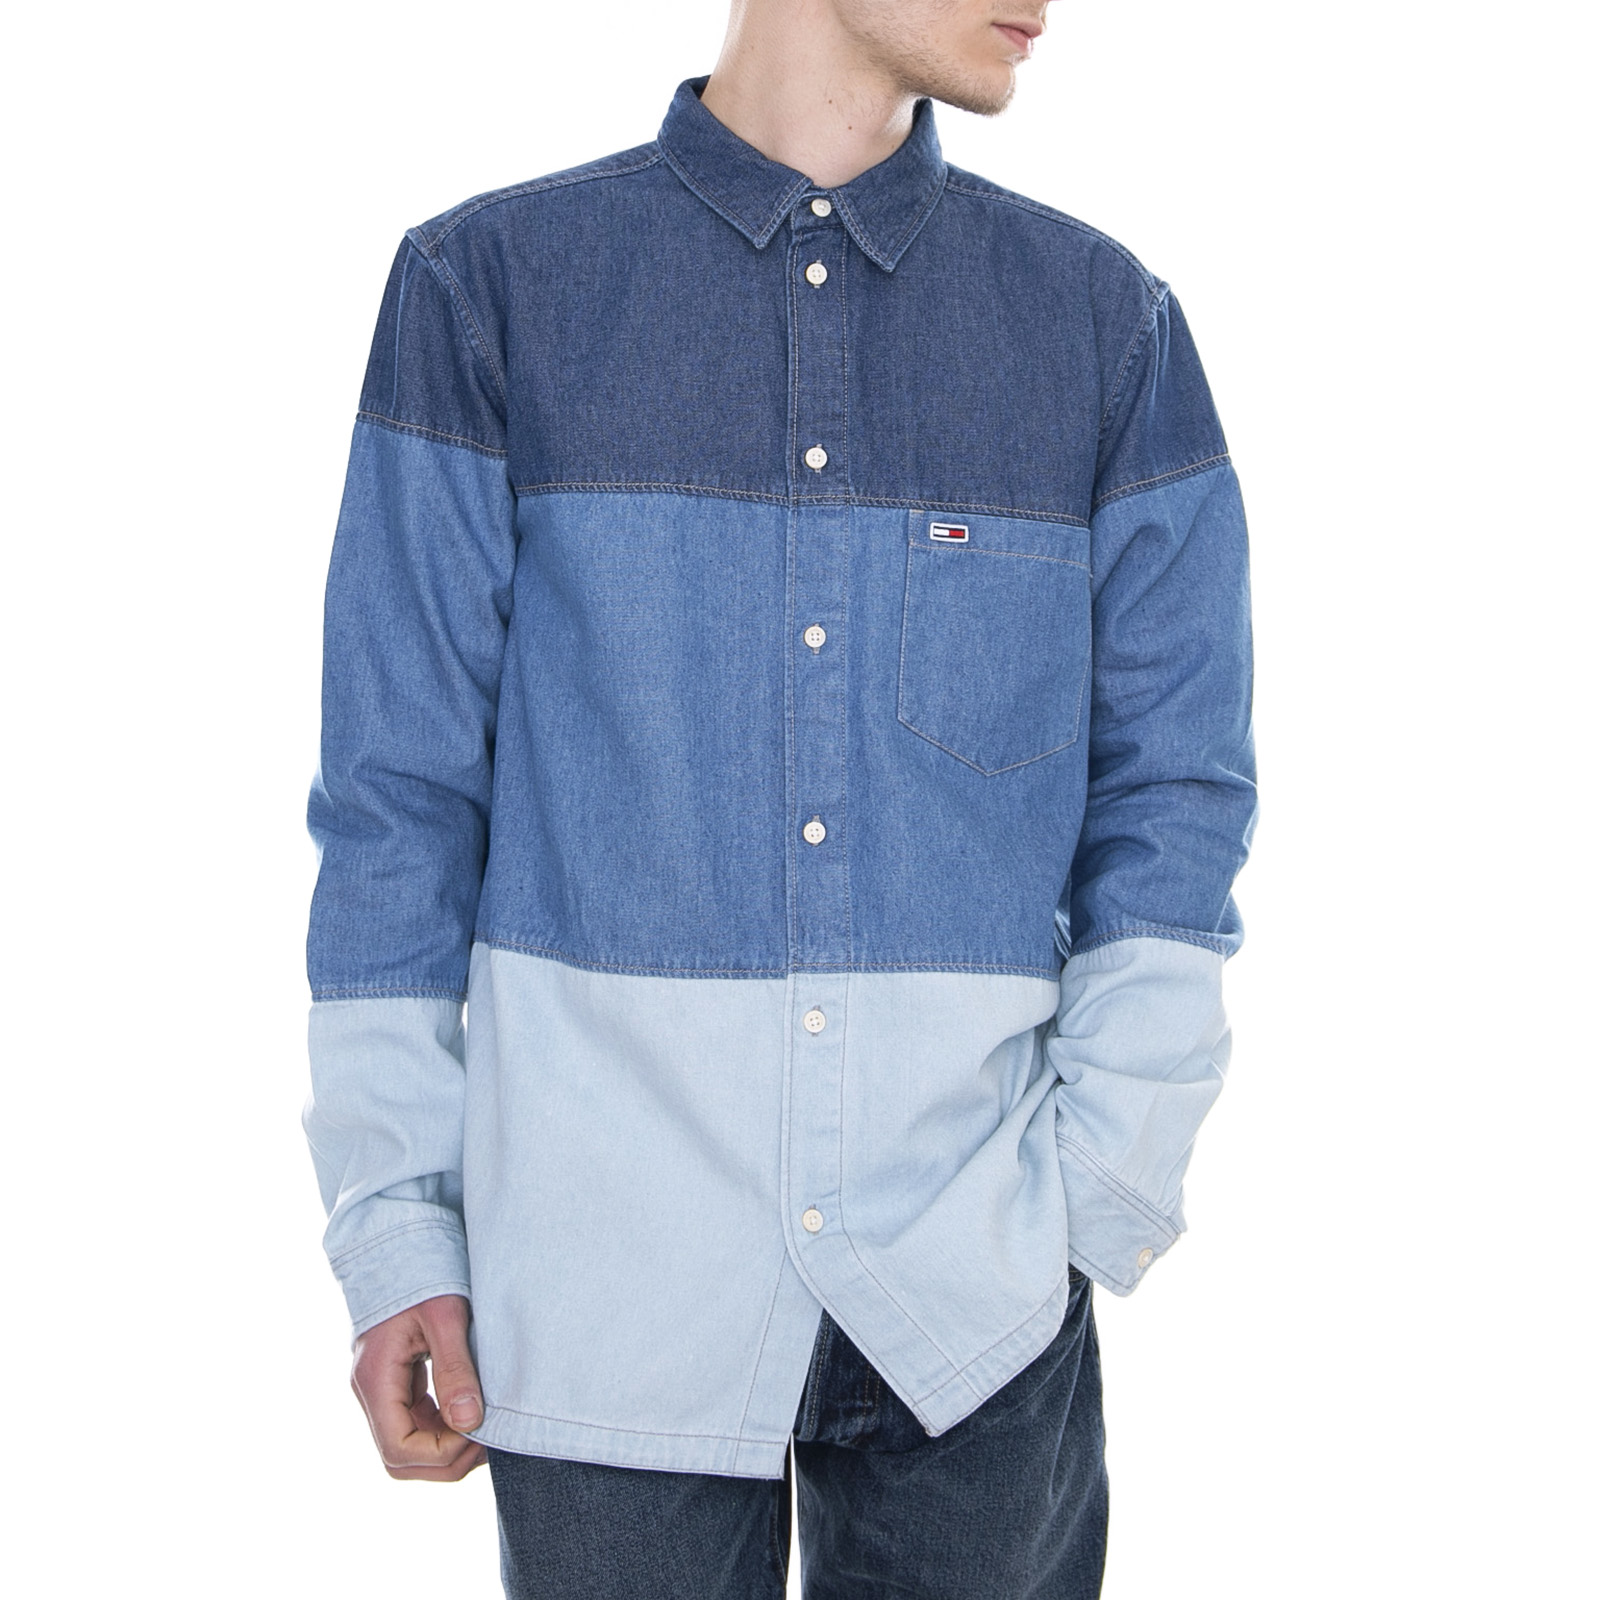 premium selection 52687 006c9 Dettagli su Tommy Hilfiger Camicie Denim Block Shirt Mid Indigo/Multi -  Camicia Uomo Blue